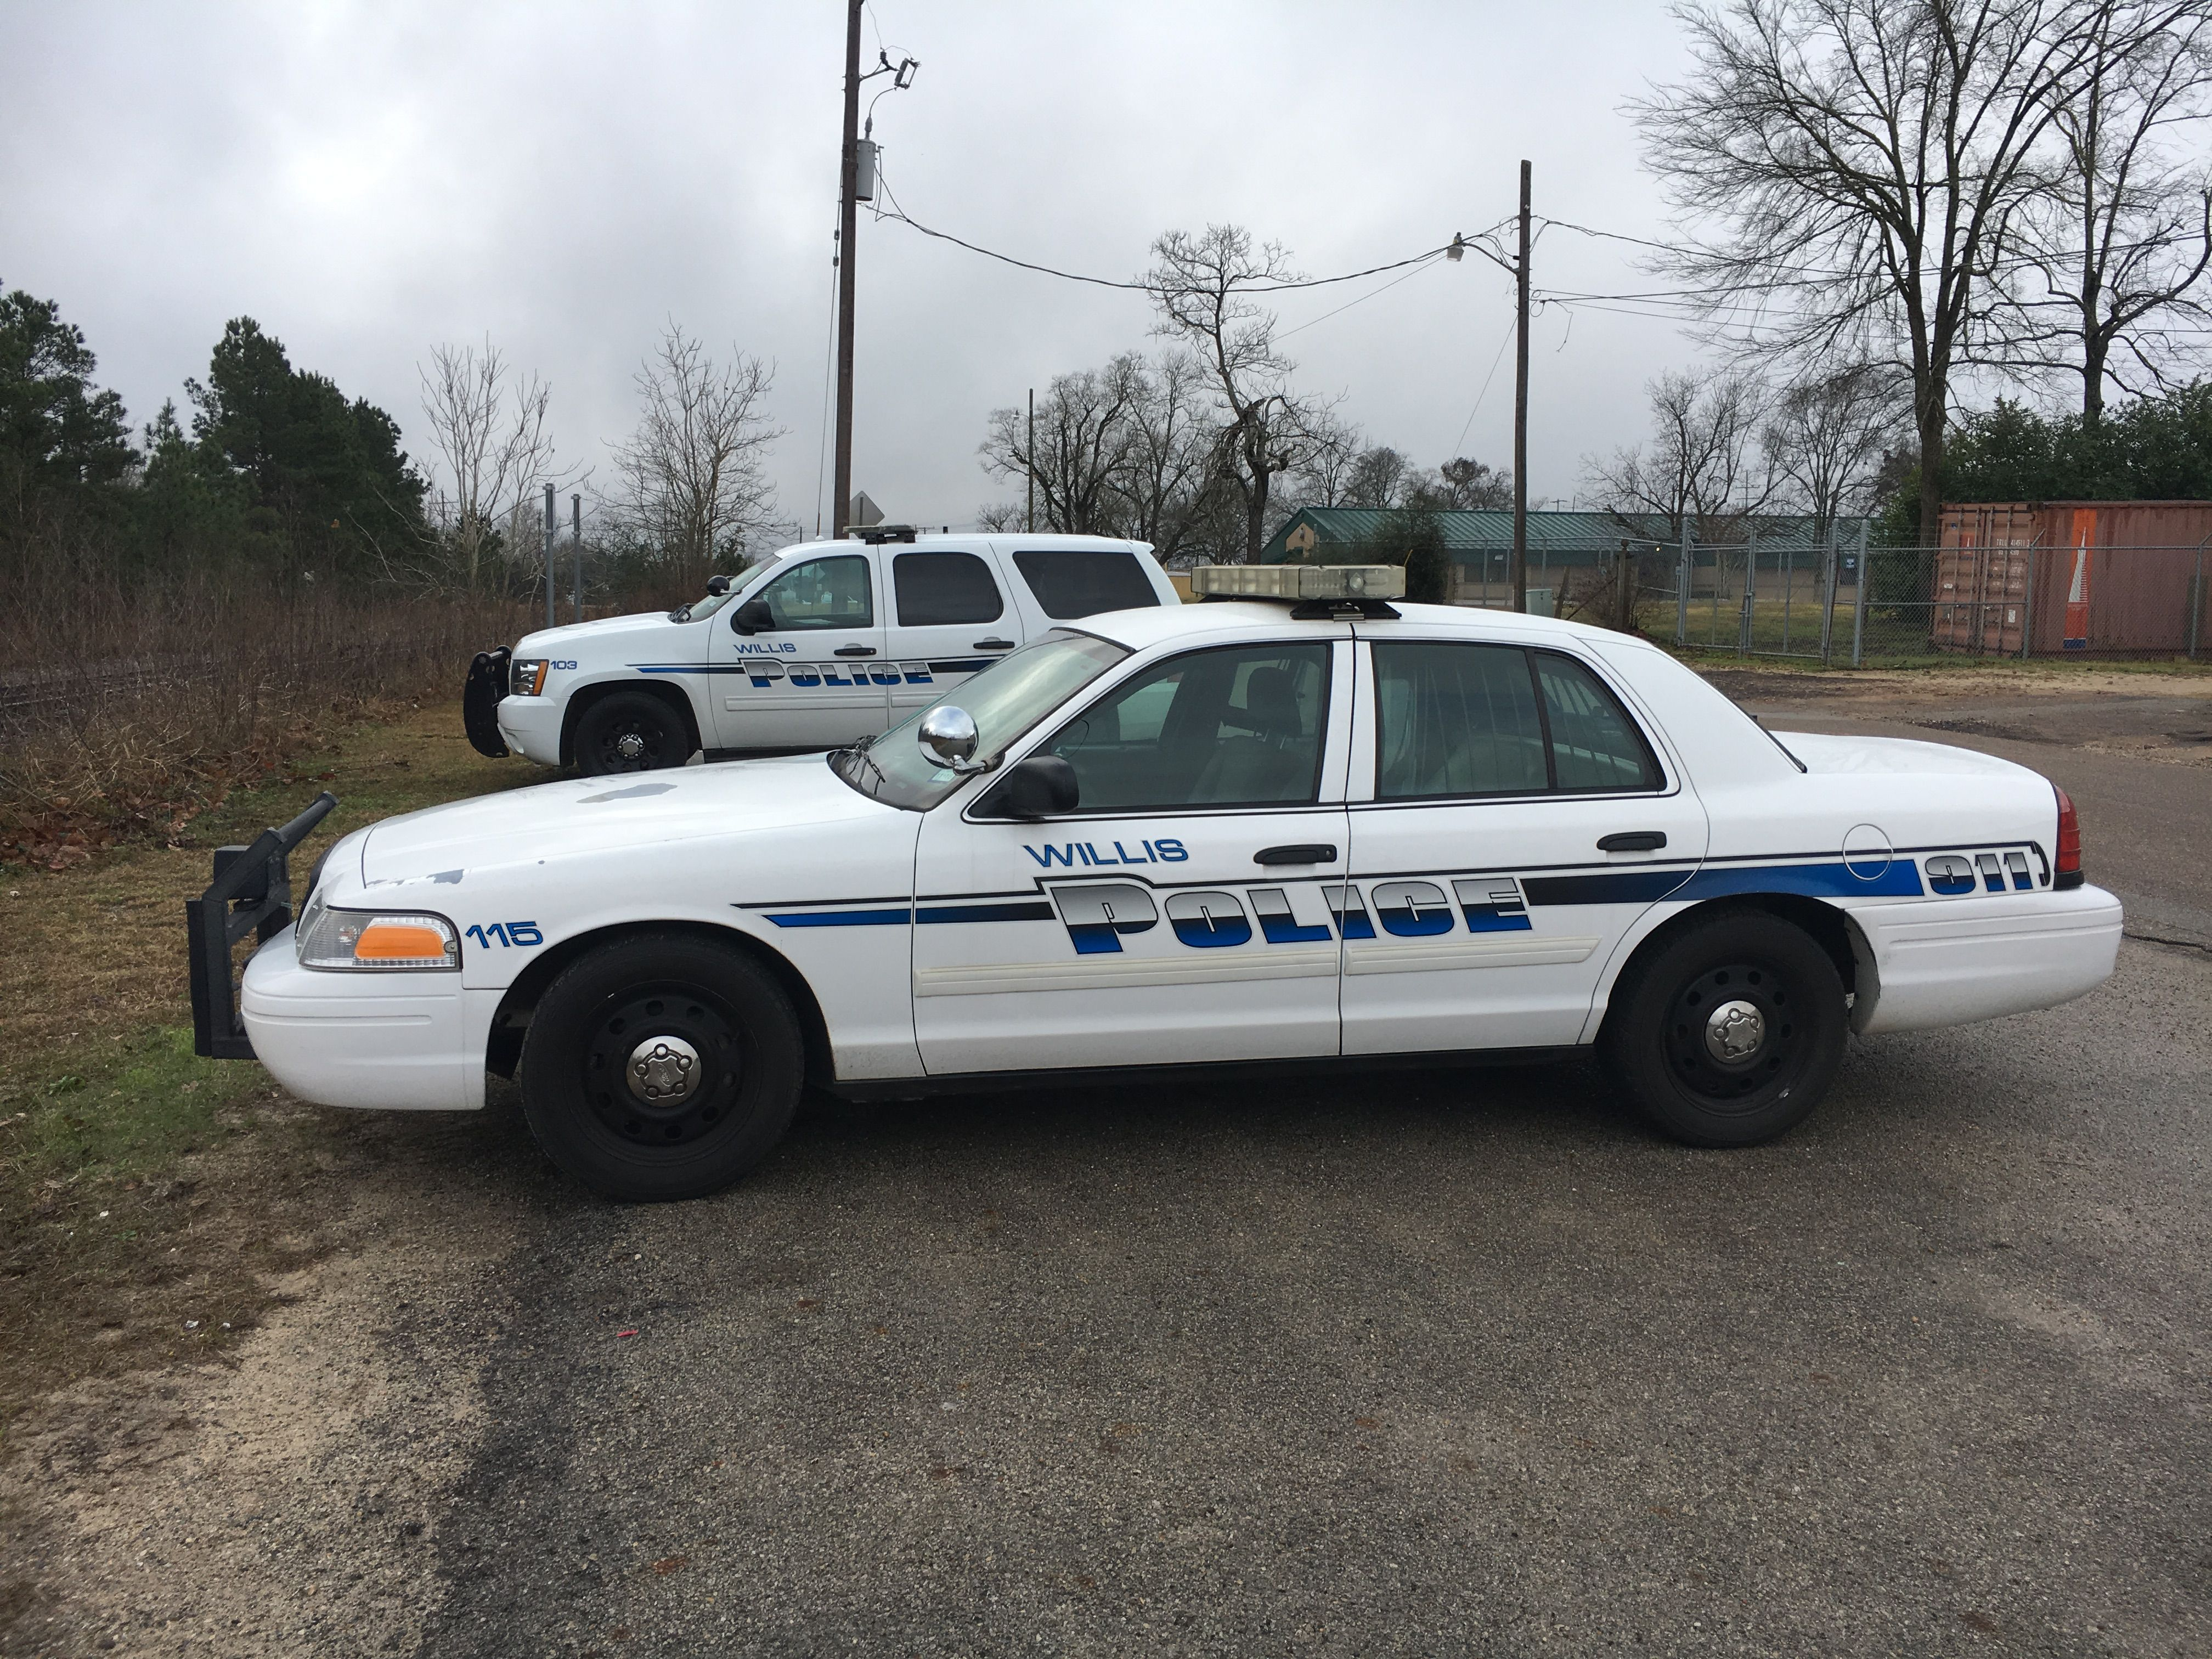 Willis Police Department Ford Crown Victoria Texas Emergency Vehicles Police Department Police